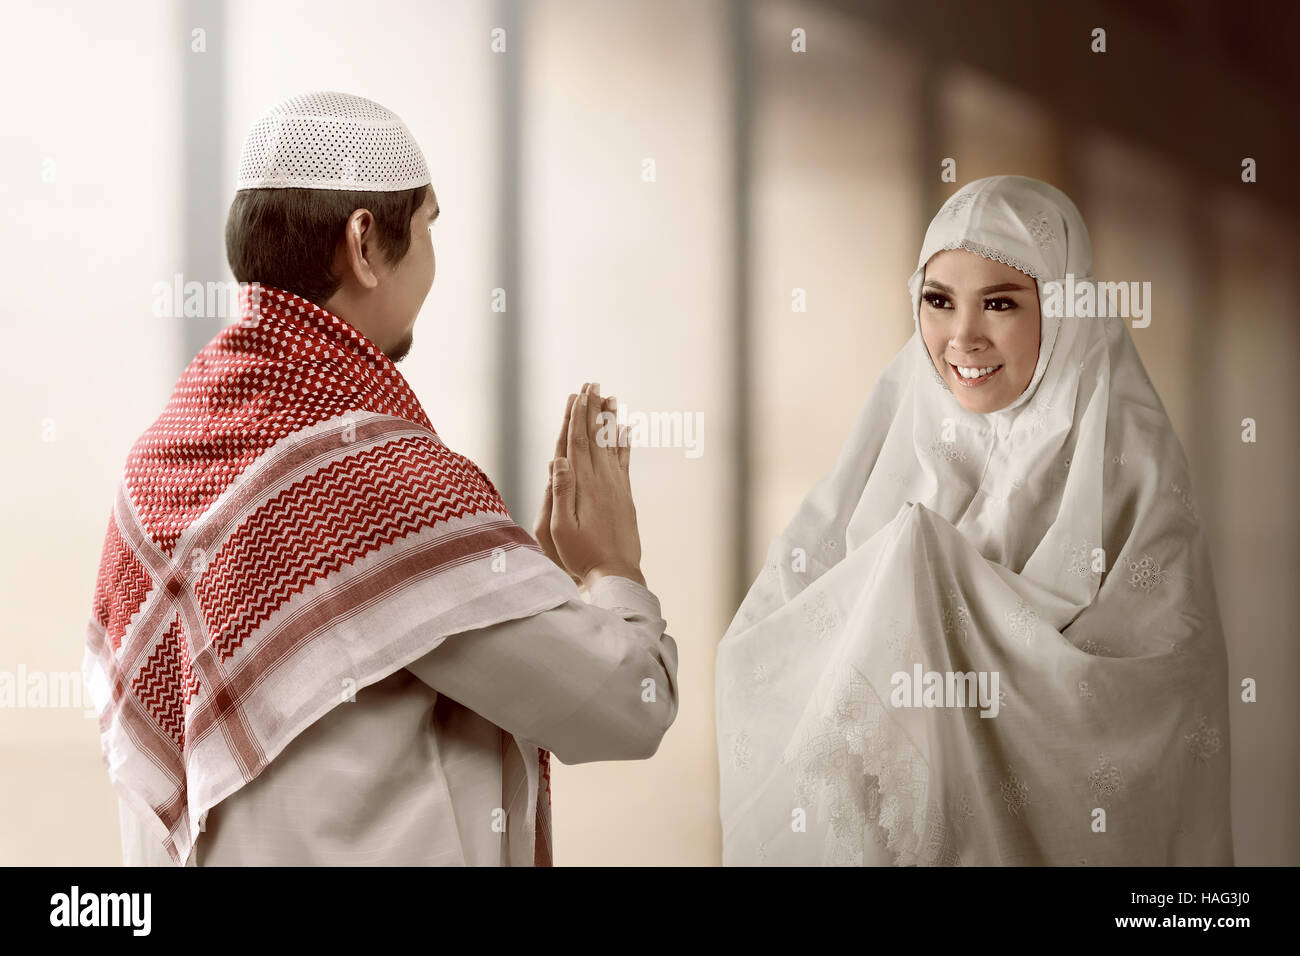 Indonesian couple muslim stock photos indonesian couple muslim asian muslim man and woman greet each other with muslim tradition with mosque background m4hsunfo